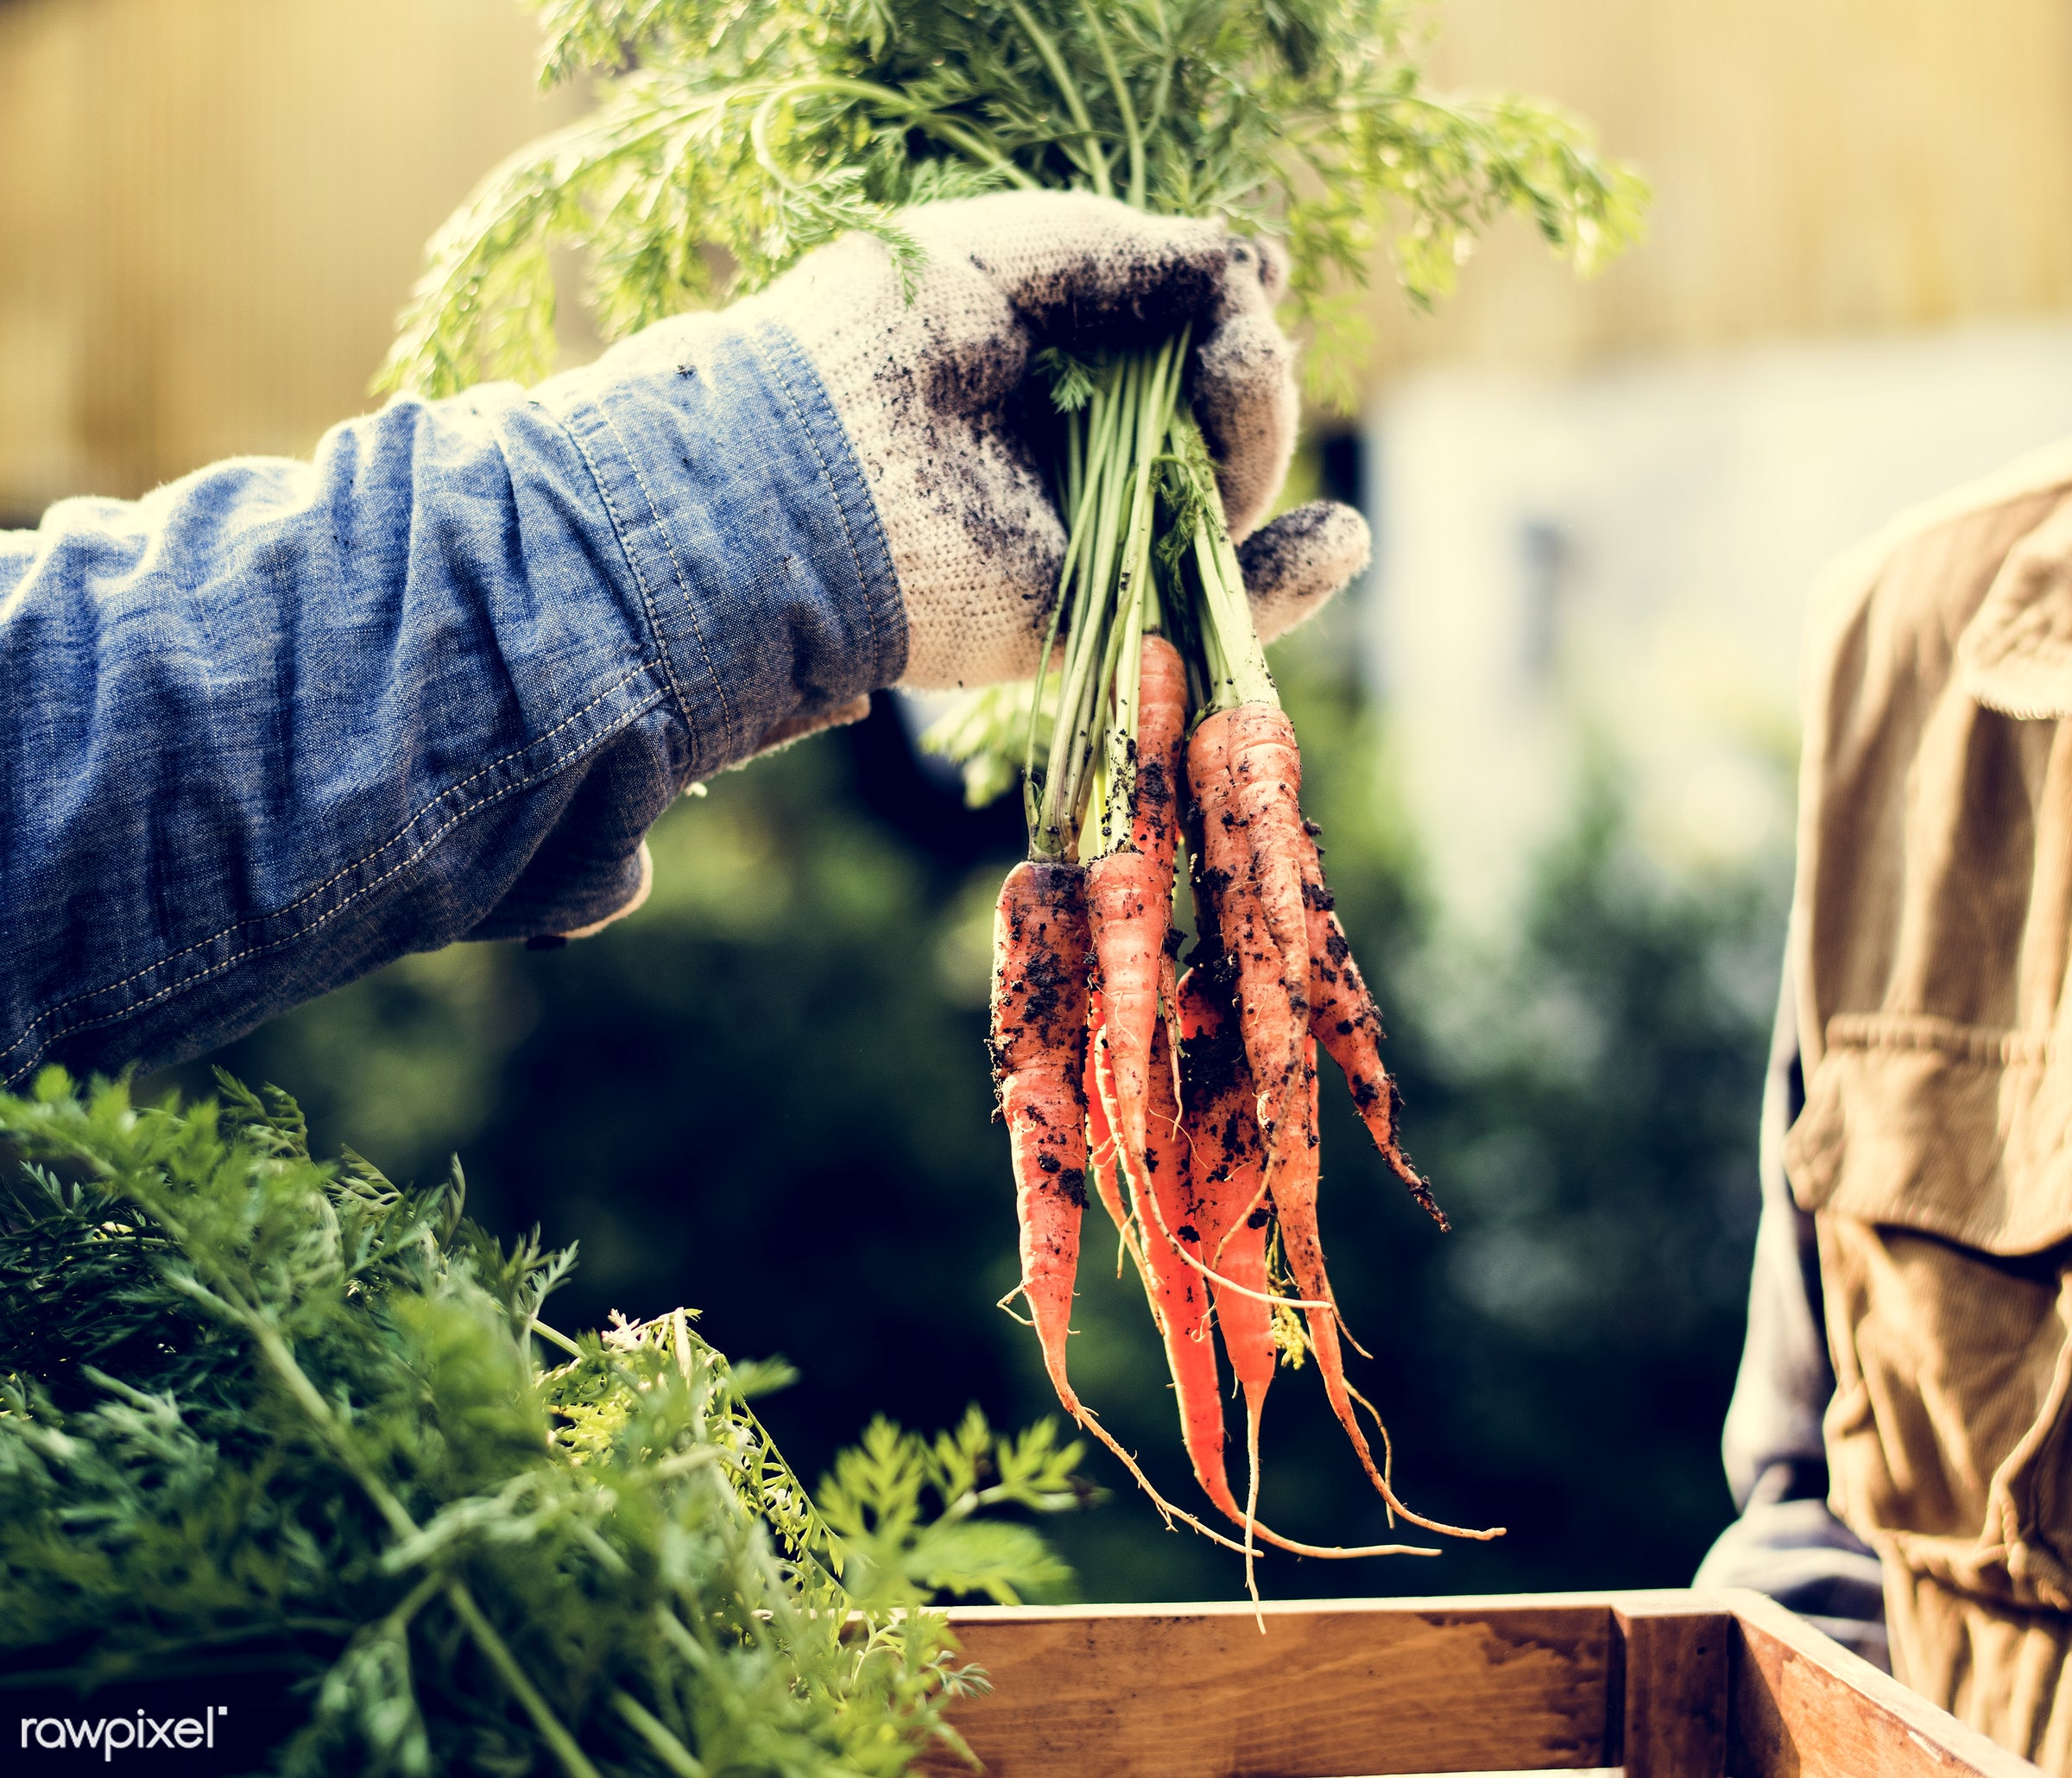 plant, raw, carrot, botany, people, hand, farmer, nature, fresh, conservation, vegetarian, ingredient, ecology, hold,...